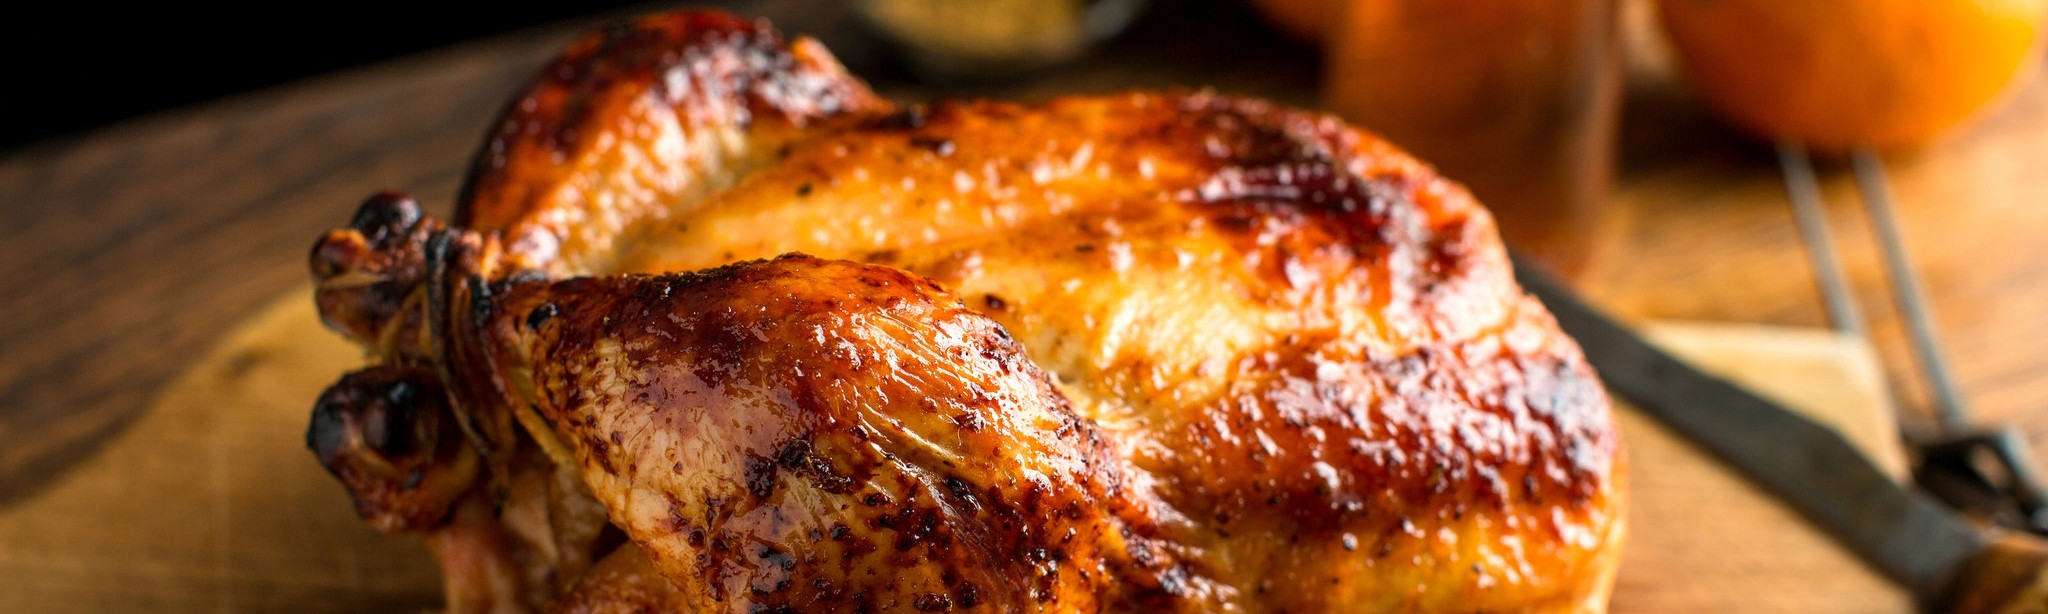 Roast-Chicken-With-Cumin-Honey-And-Orange-superJumbo